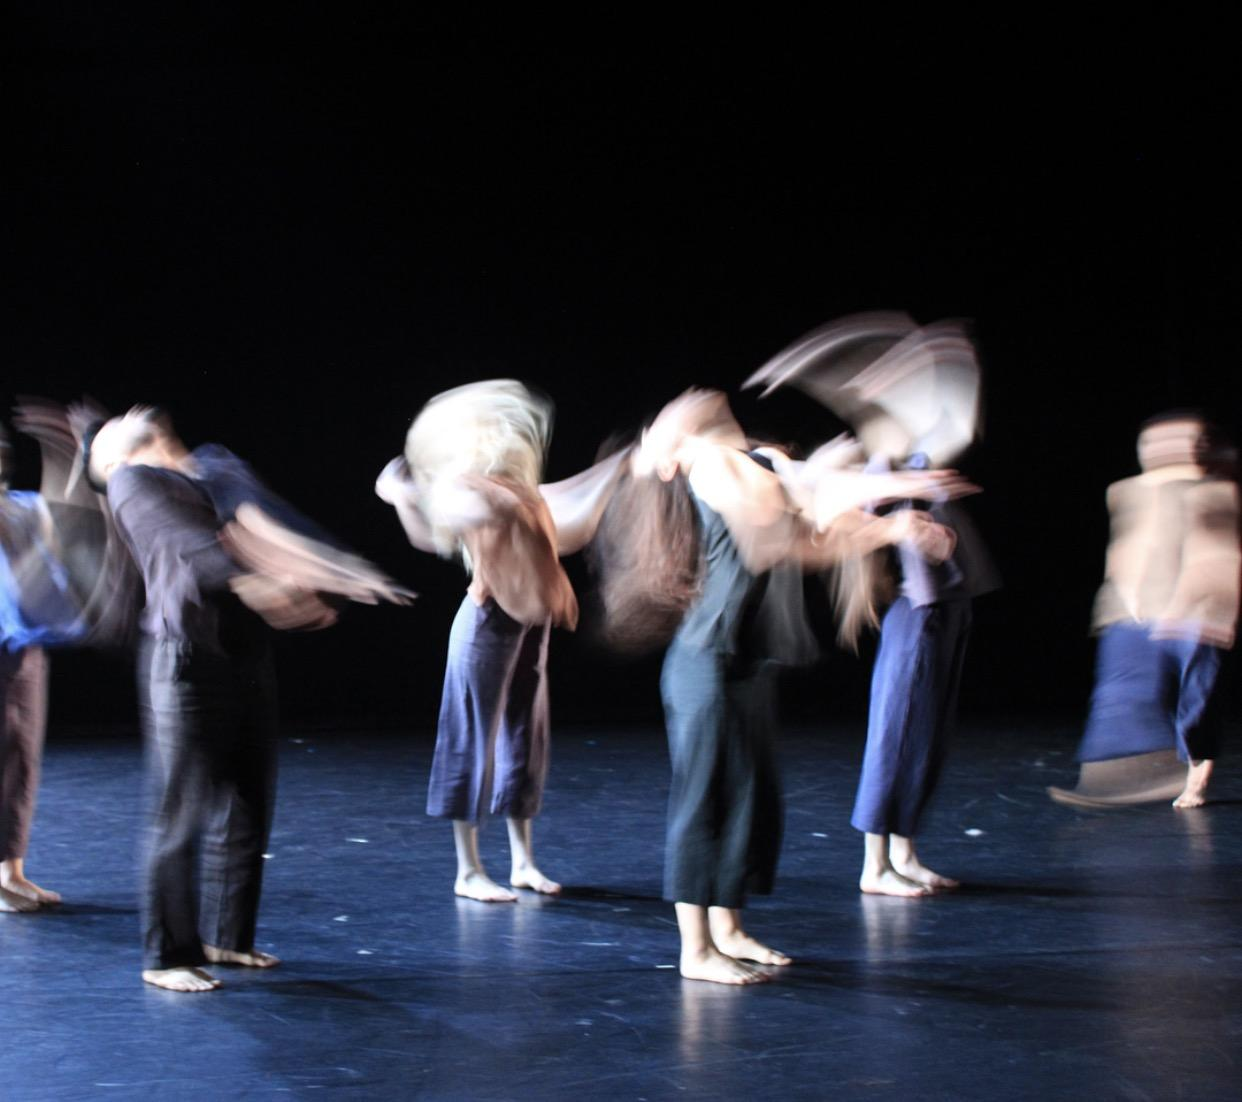 NYU Tisch Dance held a Master Performance Workshop in the Jack Crystal Theatre, including 5 works created collaboratively by undergraduate and graduate students.